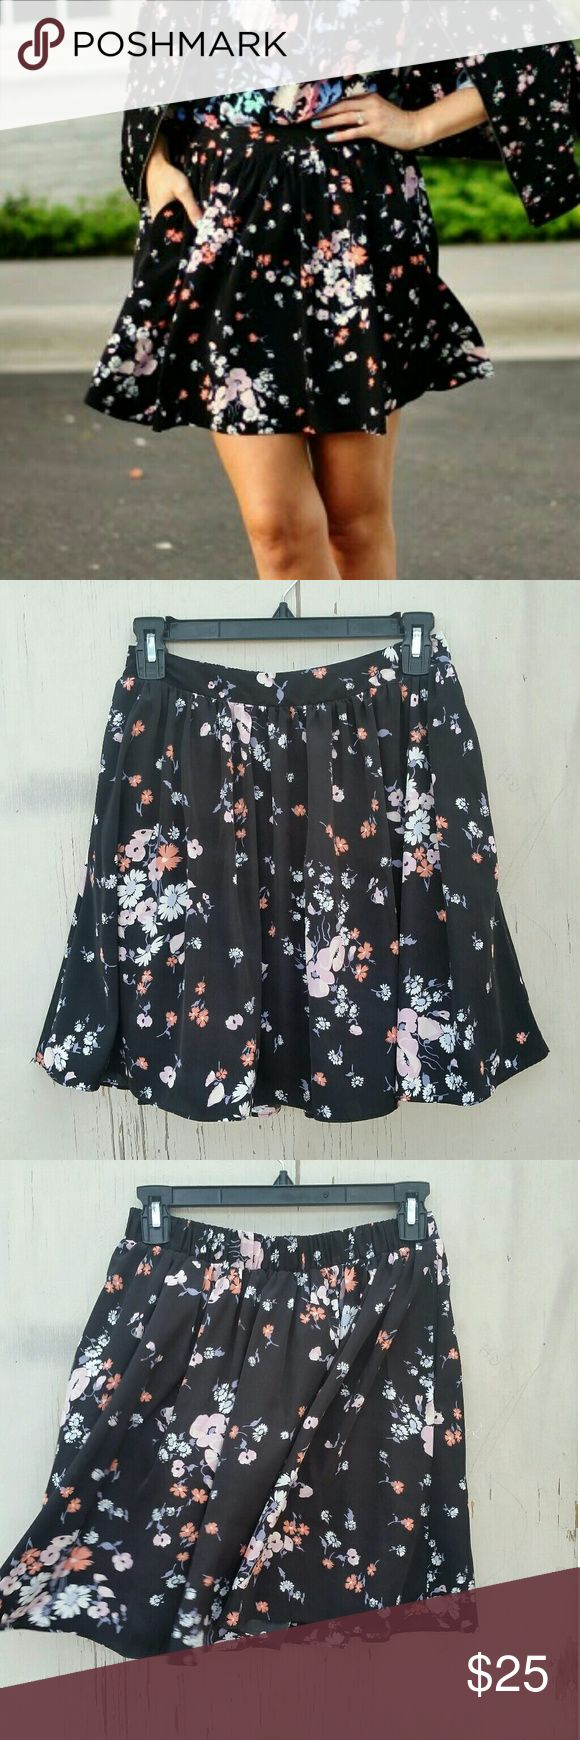 "♥Lauren Conrad Dark Floral Skater Skirt♥ Hi Poshers! I'm selling this adorable LC Floral Skater Skirt! It's size Xs but has elastic on the back part of the waist so it will be very comfy! Such a versatile Floral print also would look so cute with a denim shirt tucked in. measurements are 17.5"" from waist to hem. Waist is 13.5"" flat and about 17"" stretched . Great condition. Lauren Conrad  Skirts"